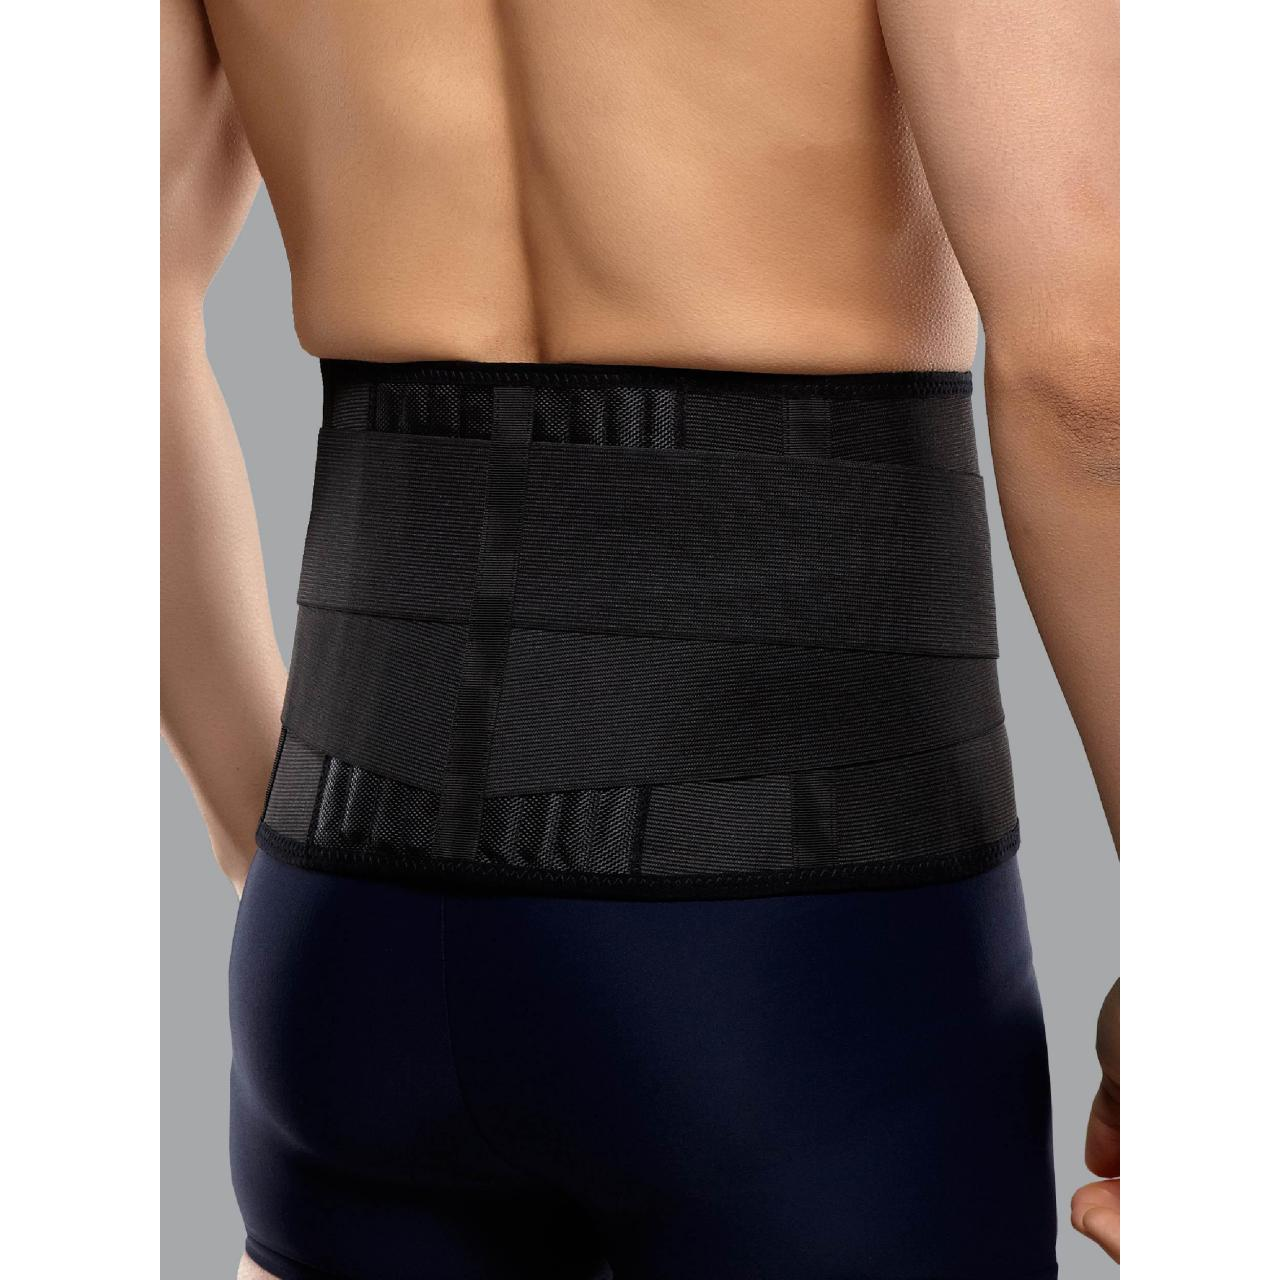 Cheap Healthcare 3506 Elastic Back Support for sale